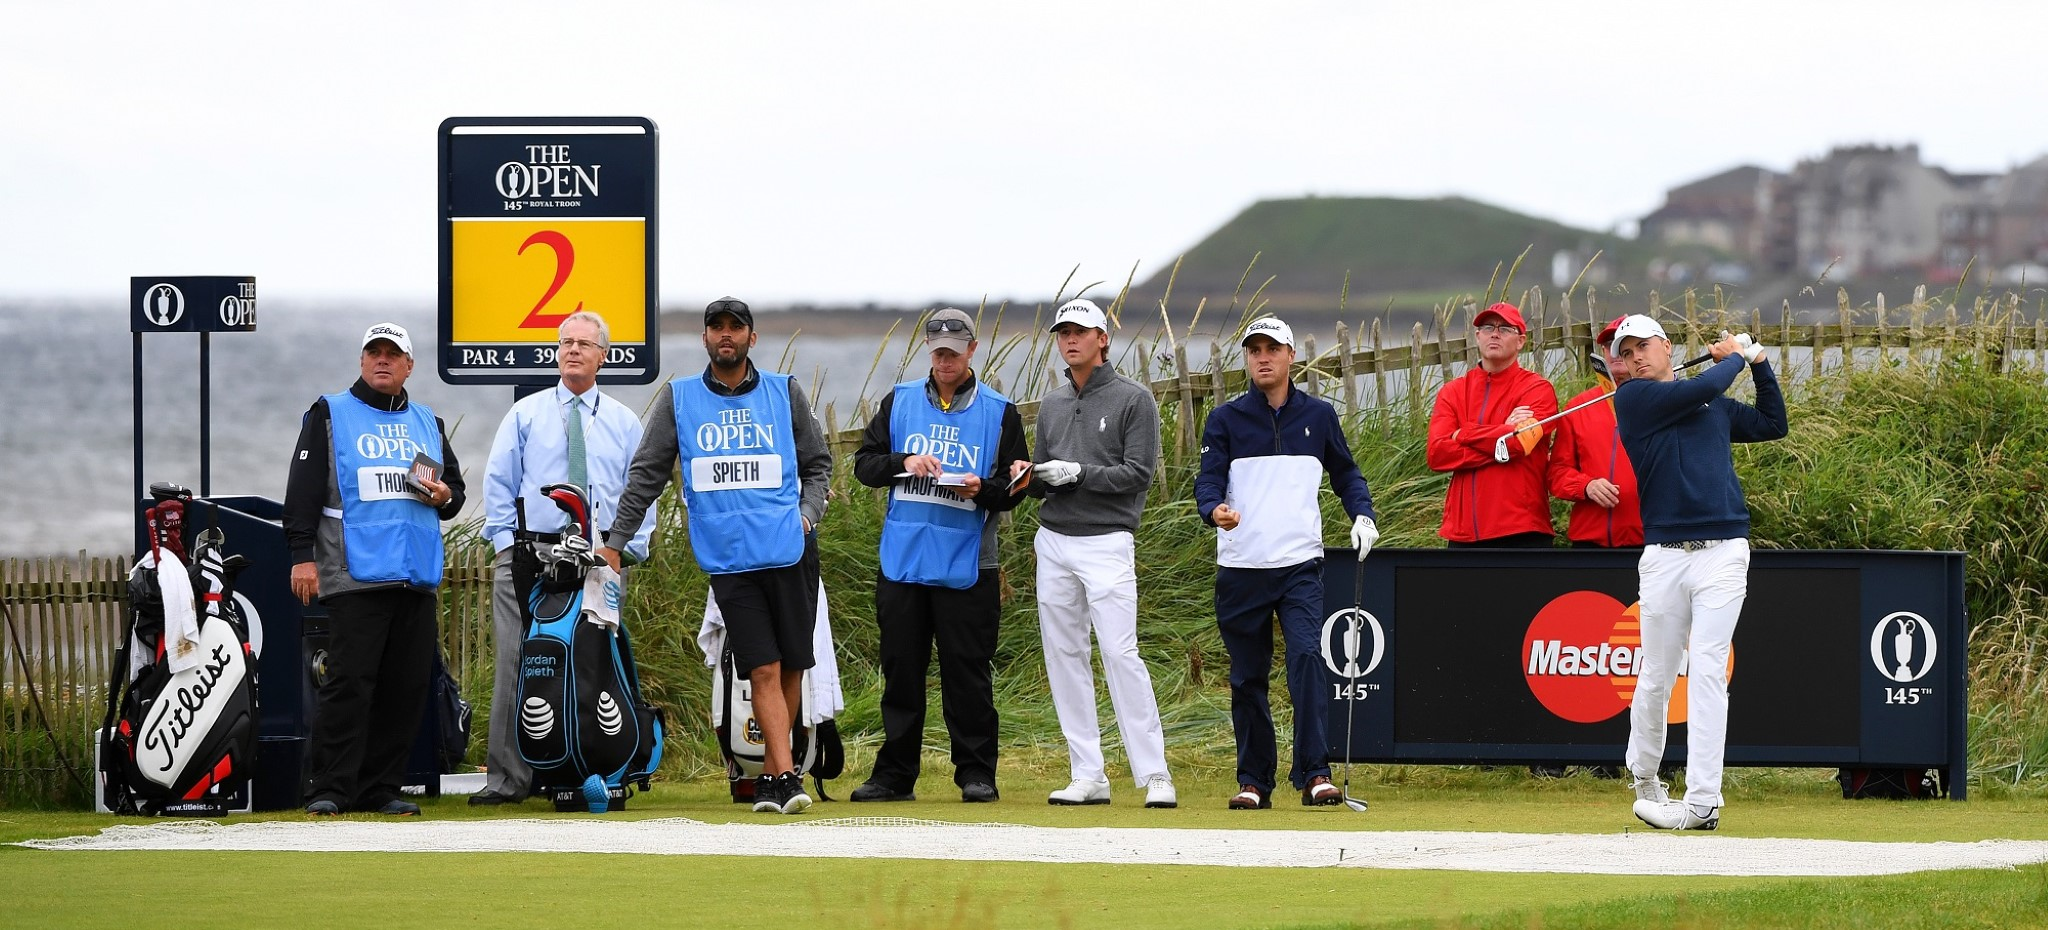 the players of the open